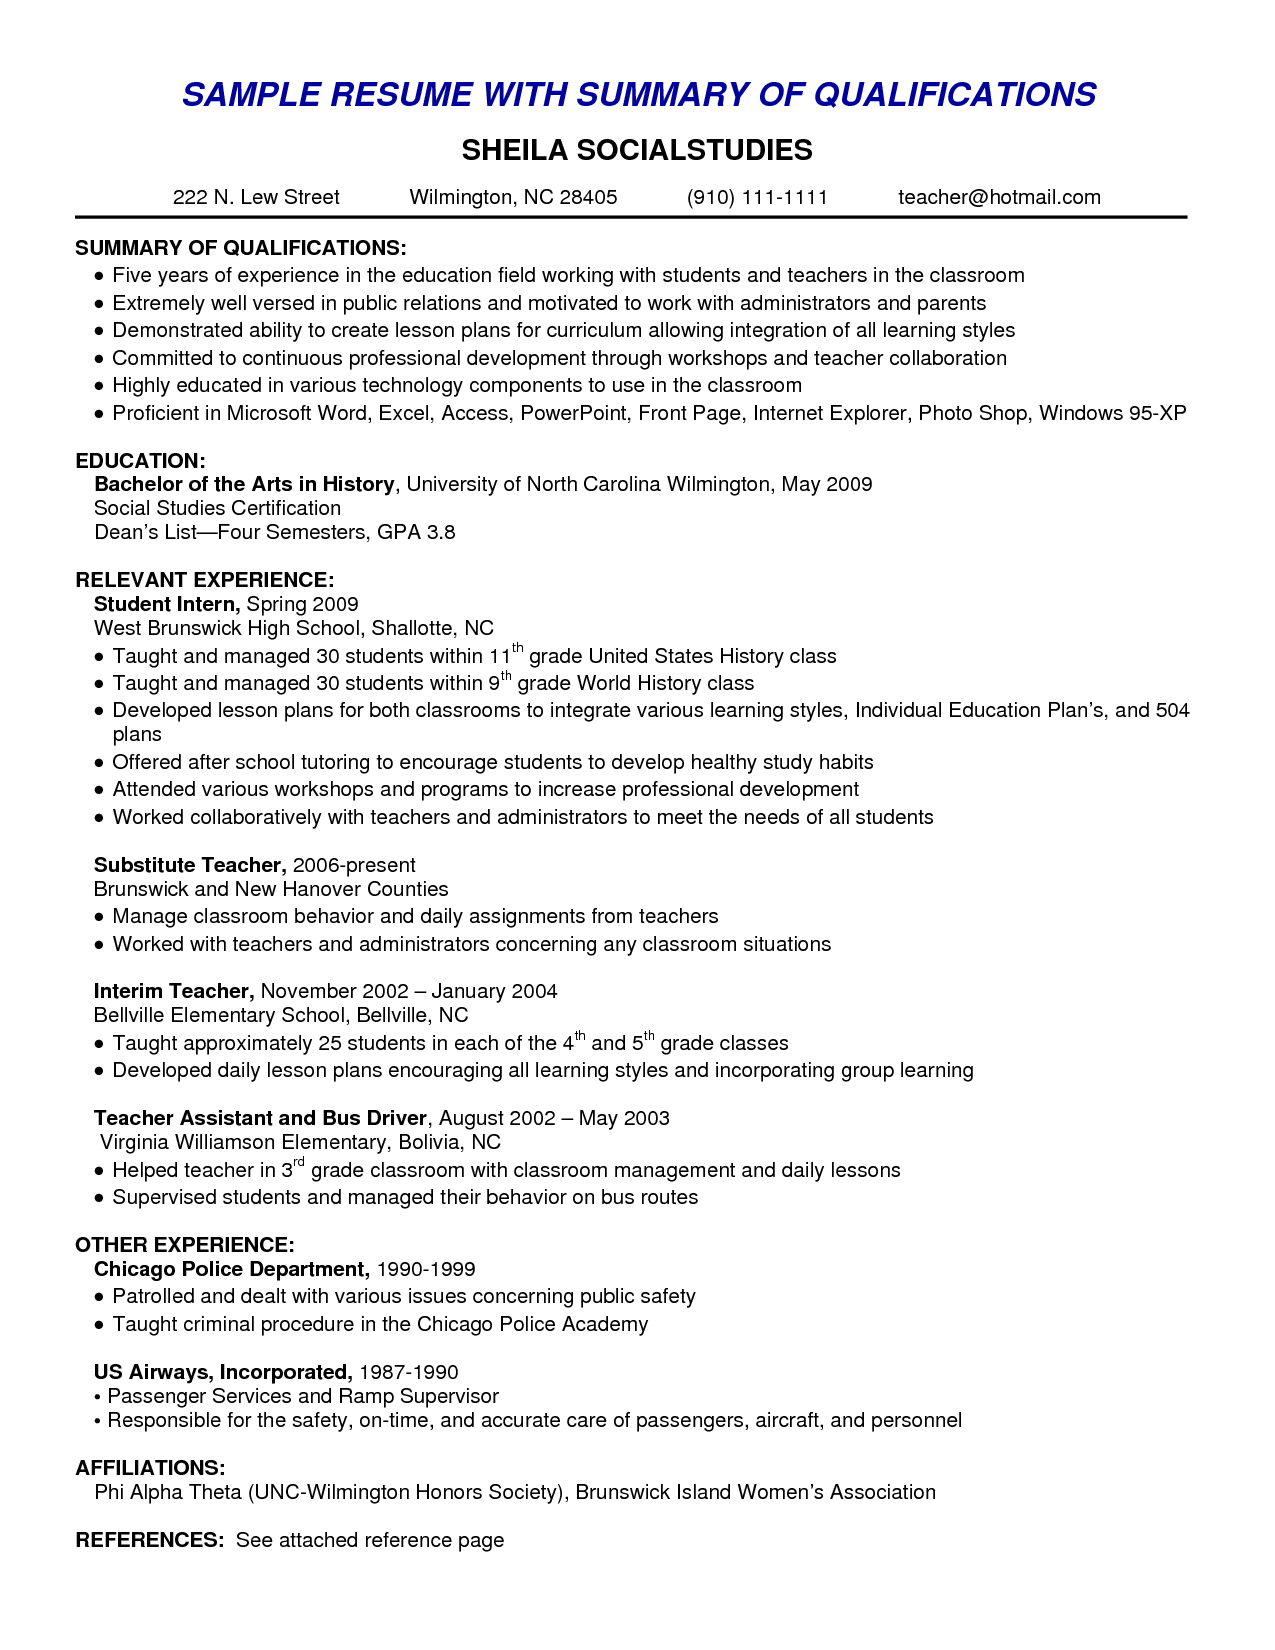 professional education resume samples top education resume templates samples